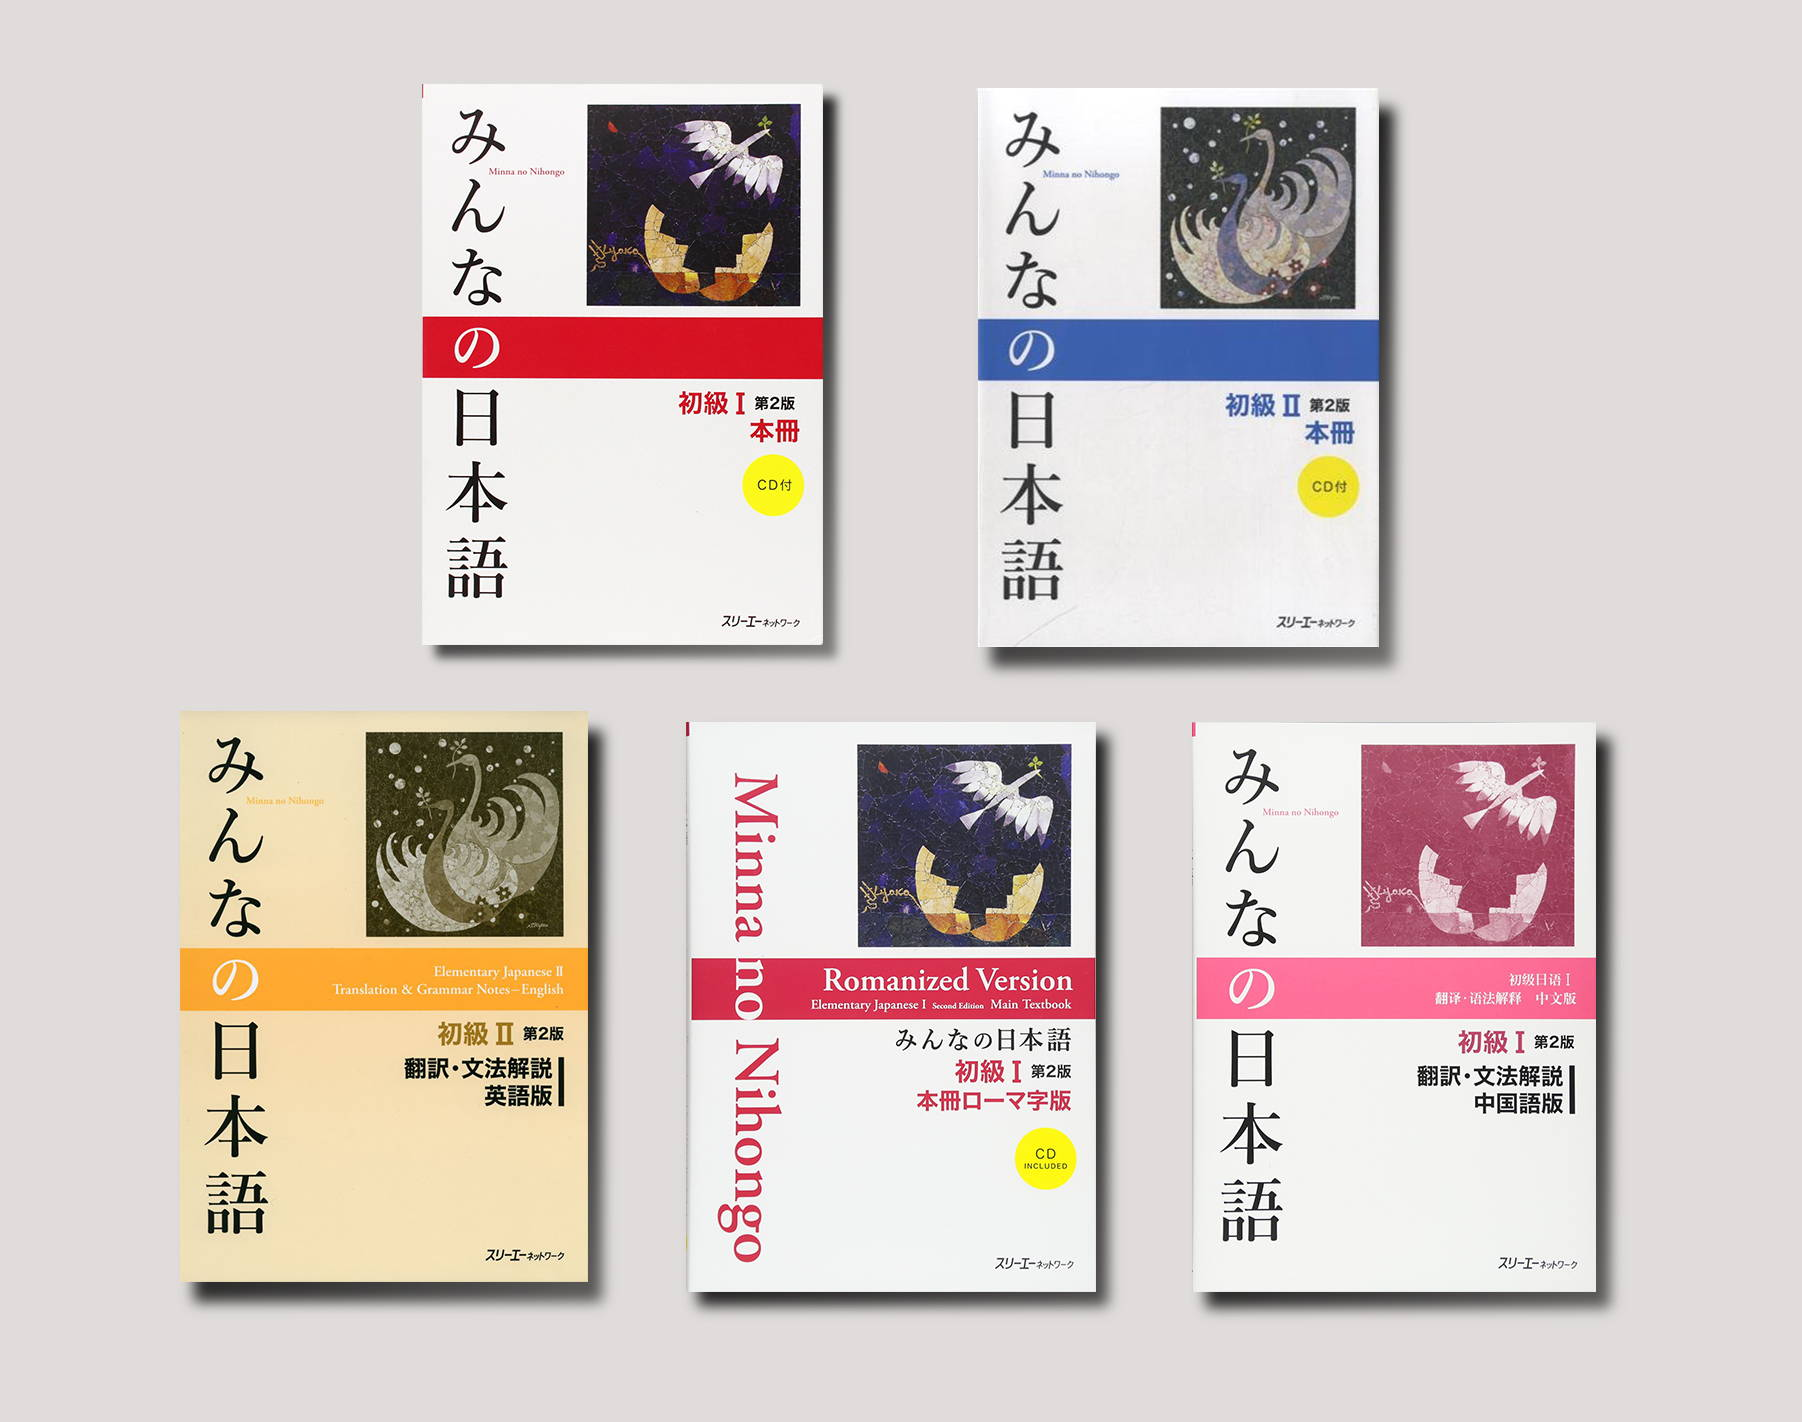 A collection of Minna No Nihongo books.